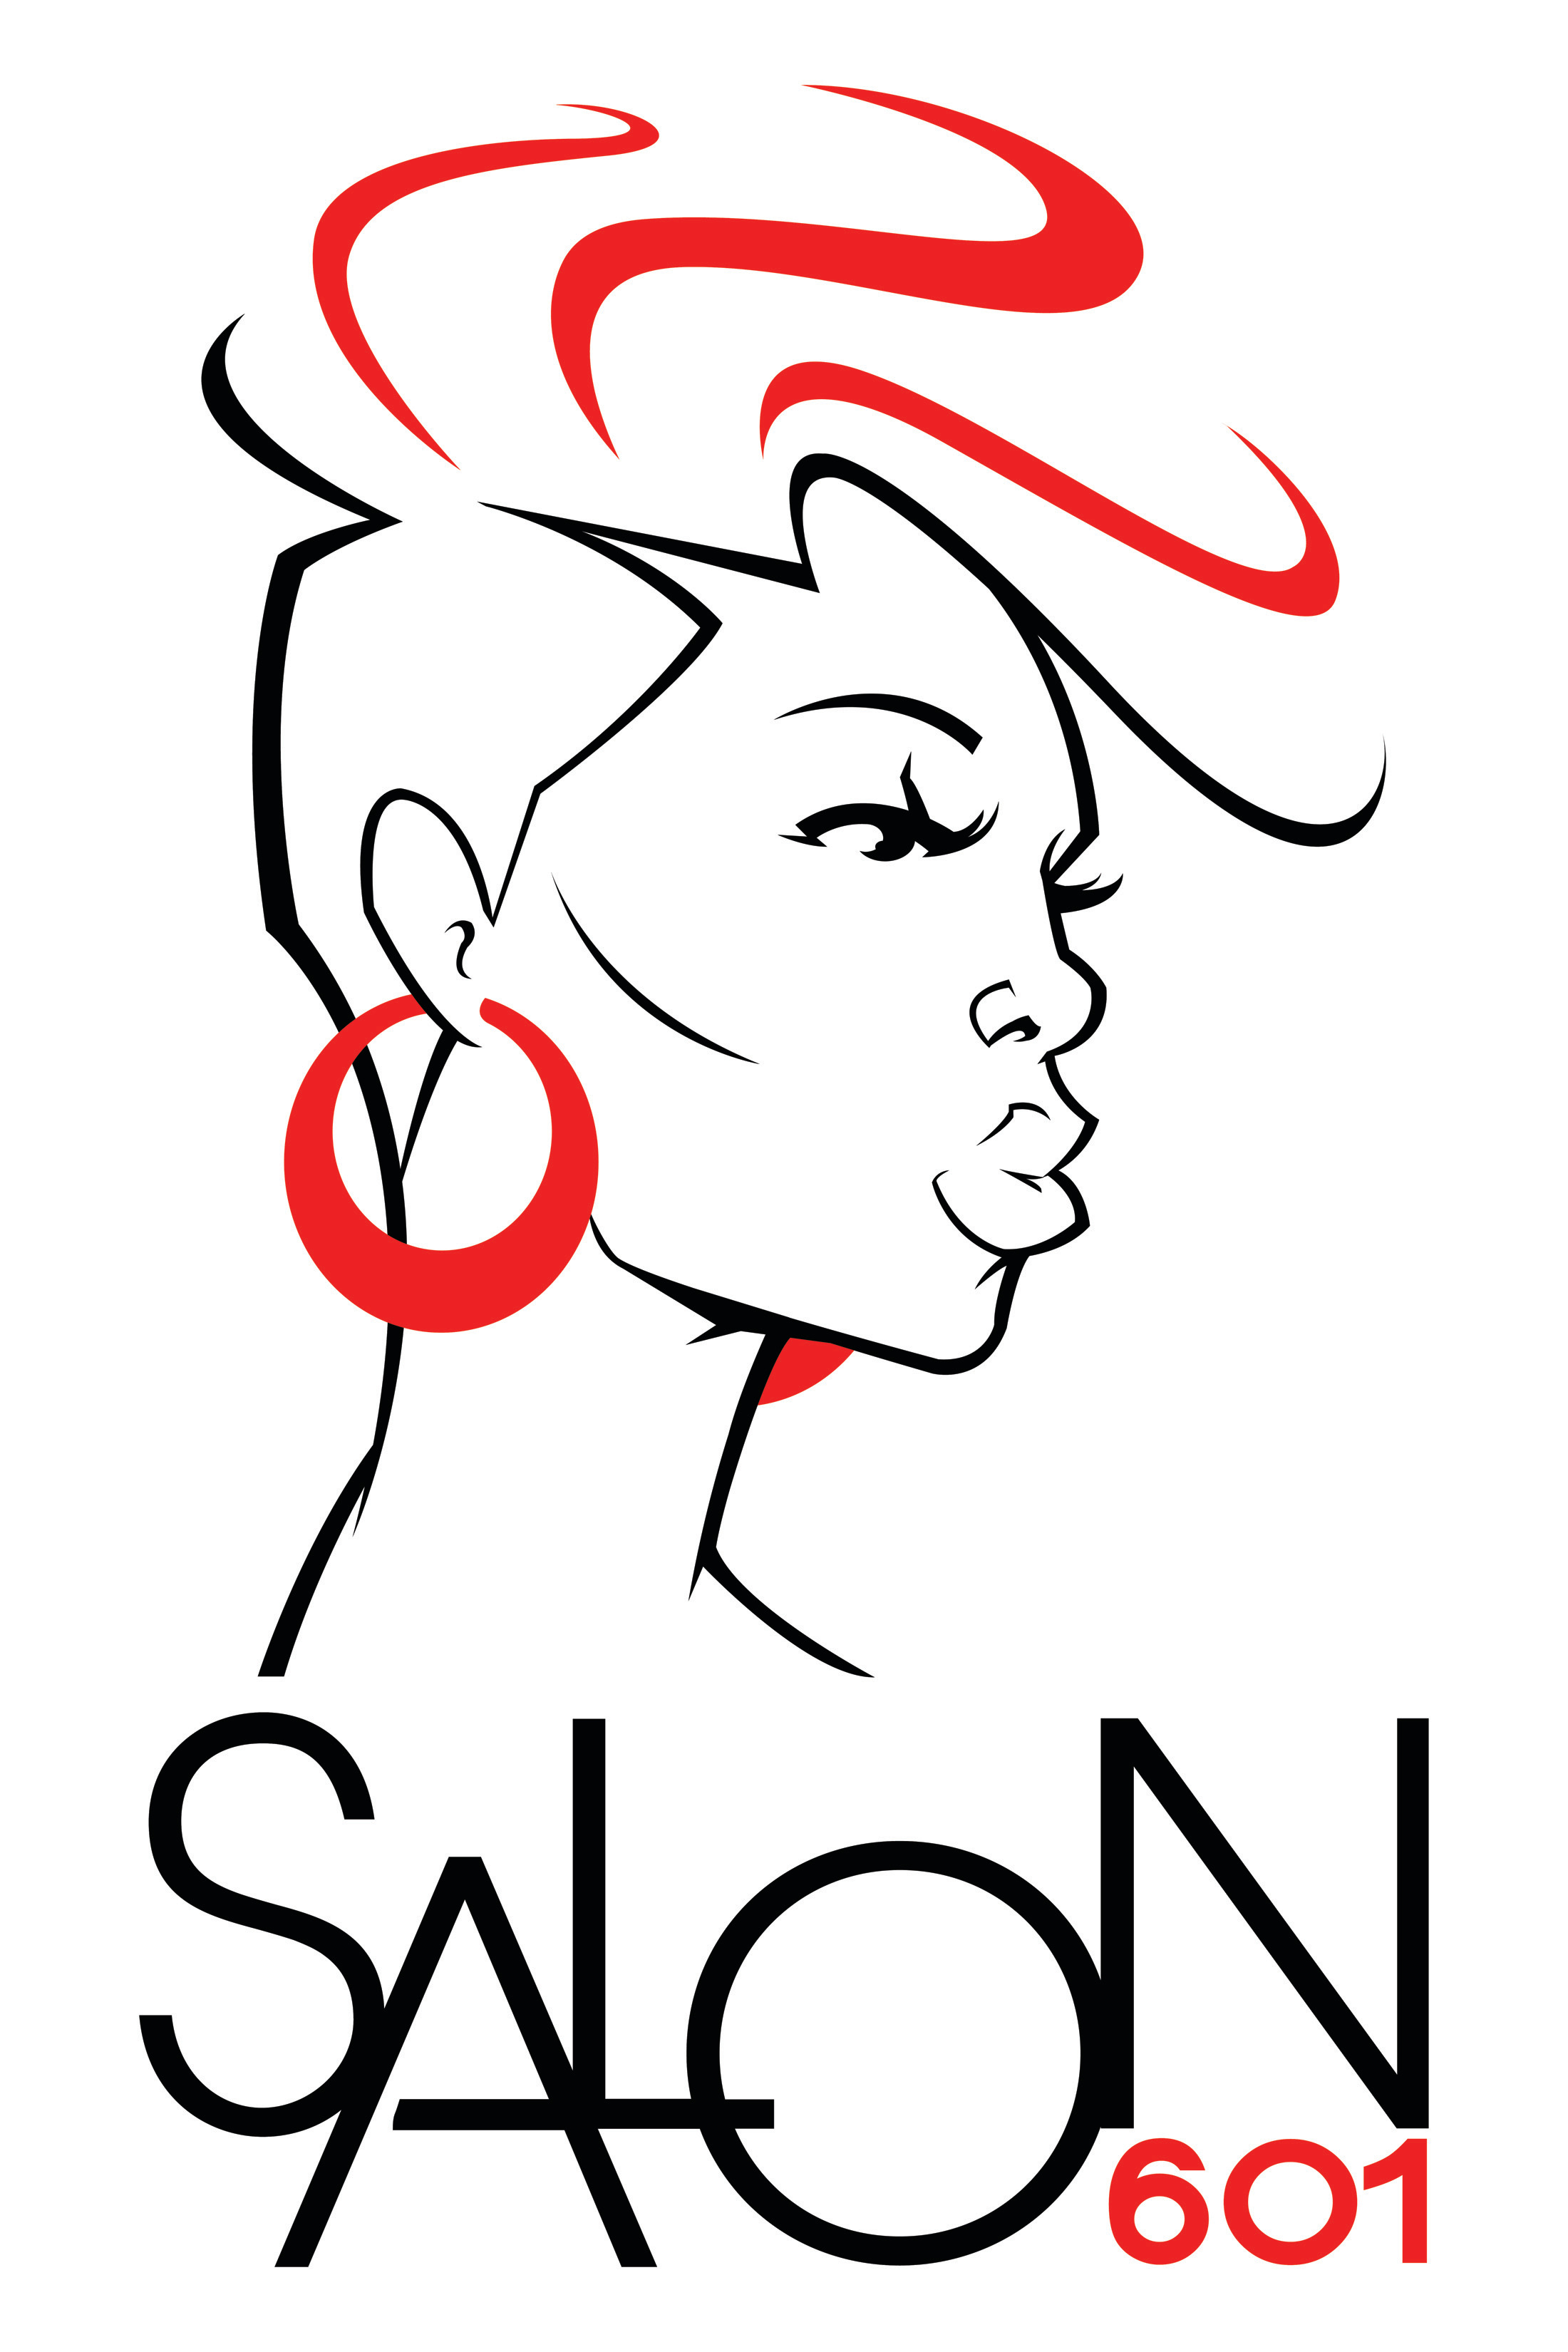 Salon 601 logo design